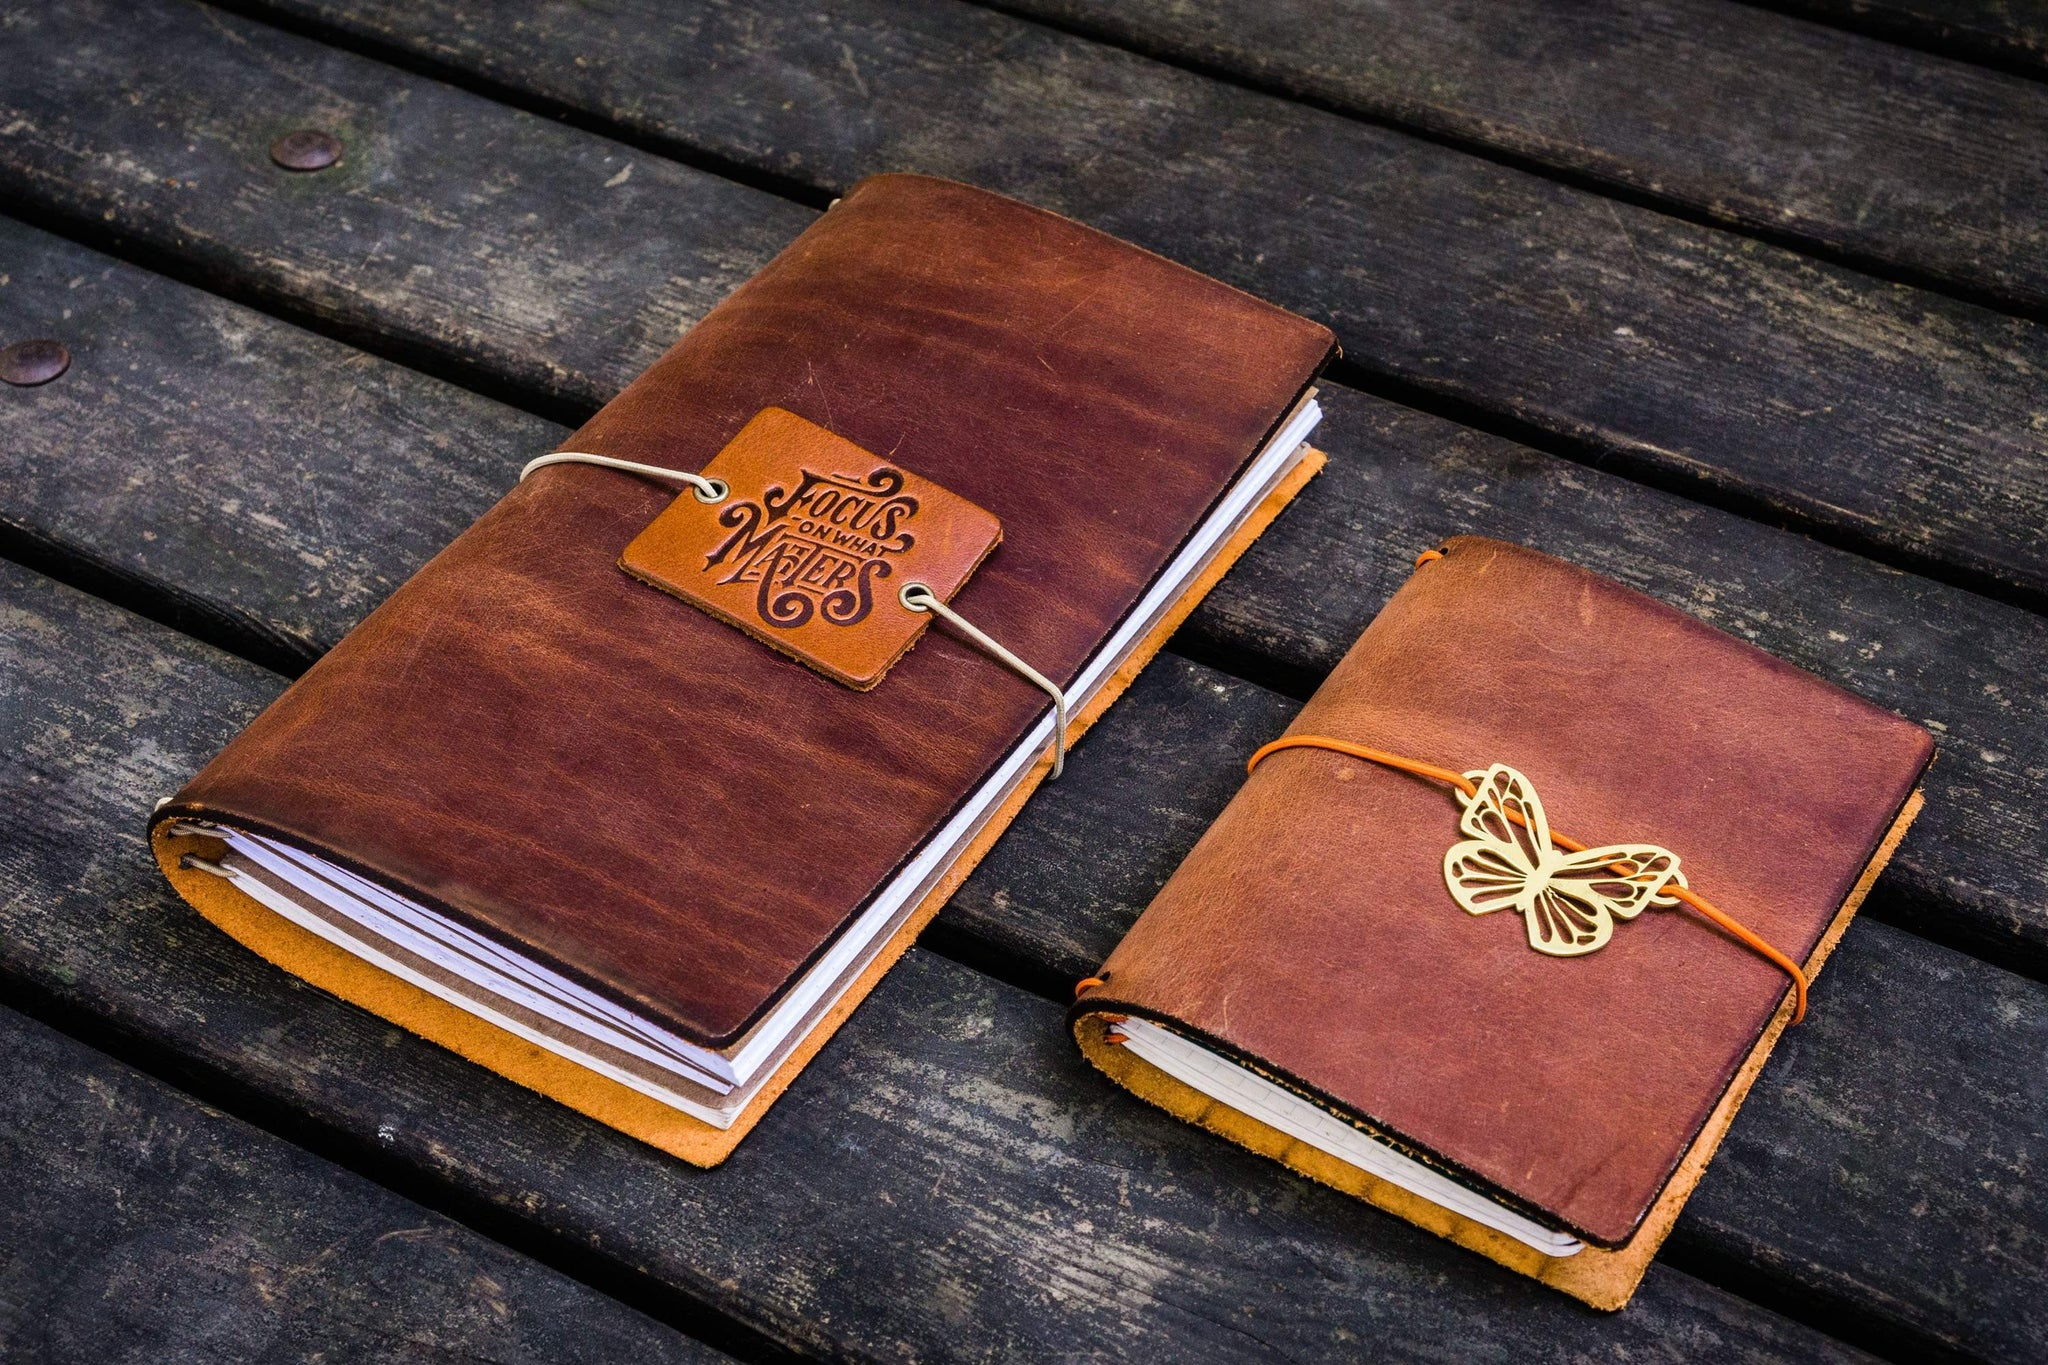 Traveler's Notebooks, Leather Notebook Covers, & More